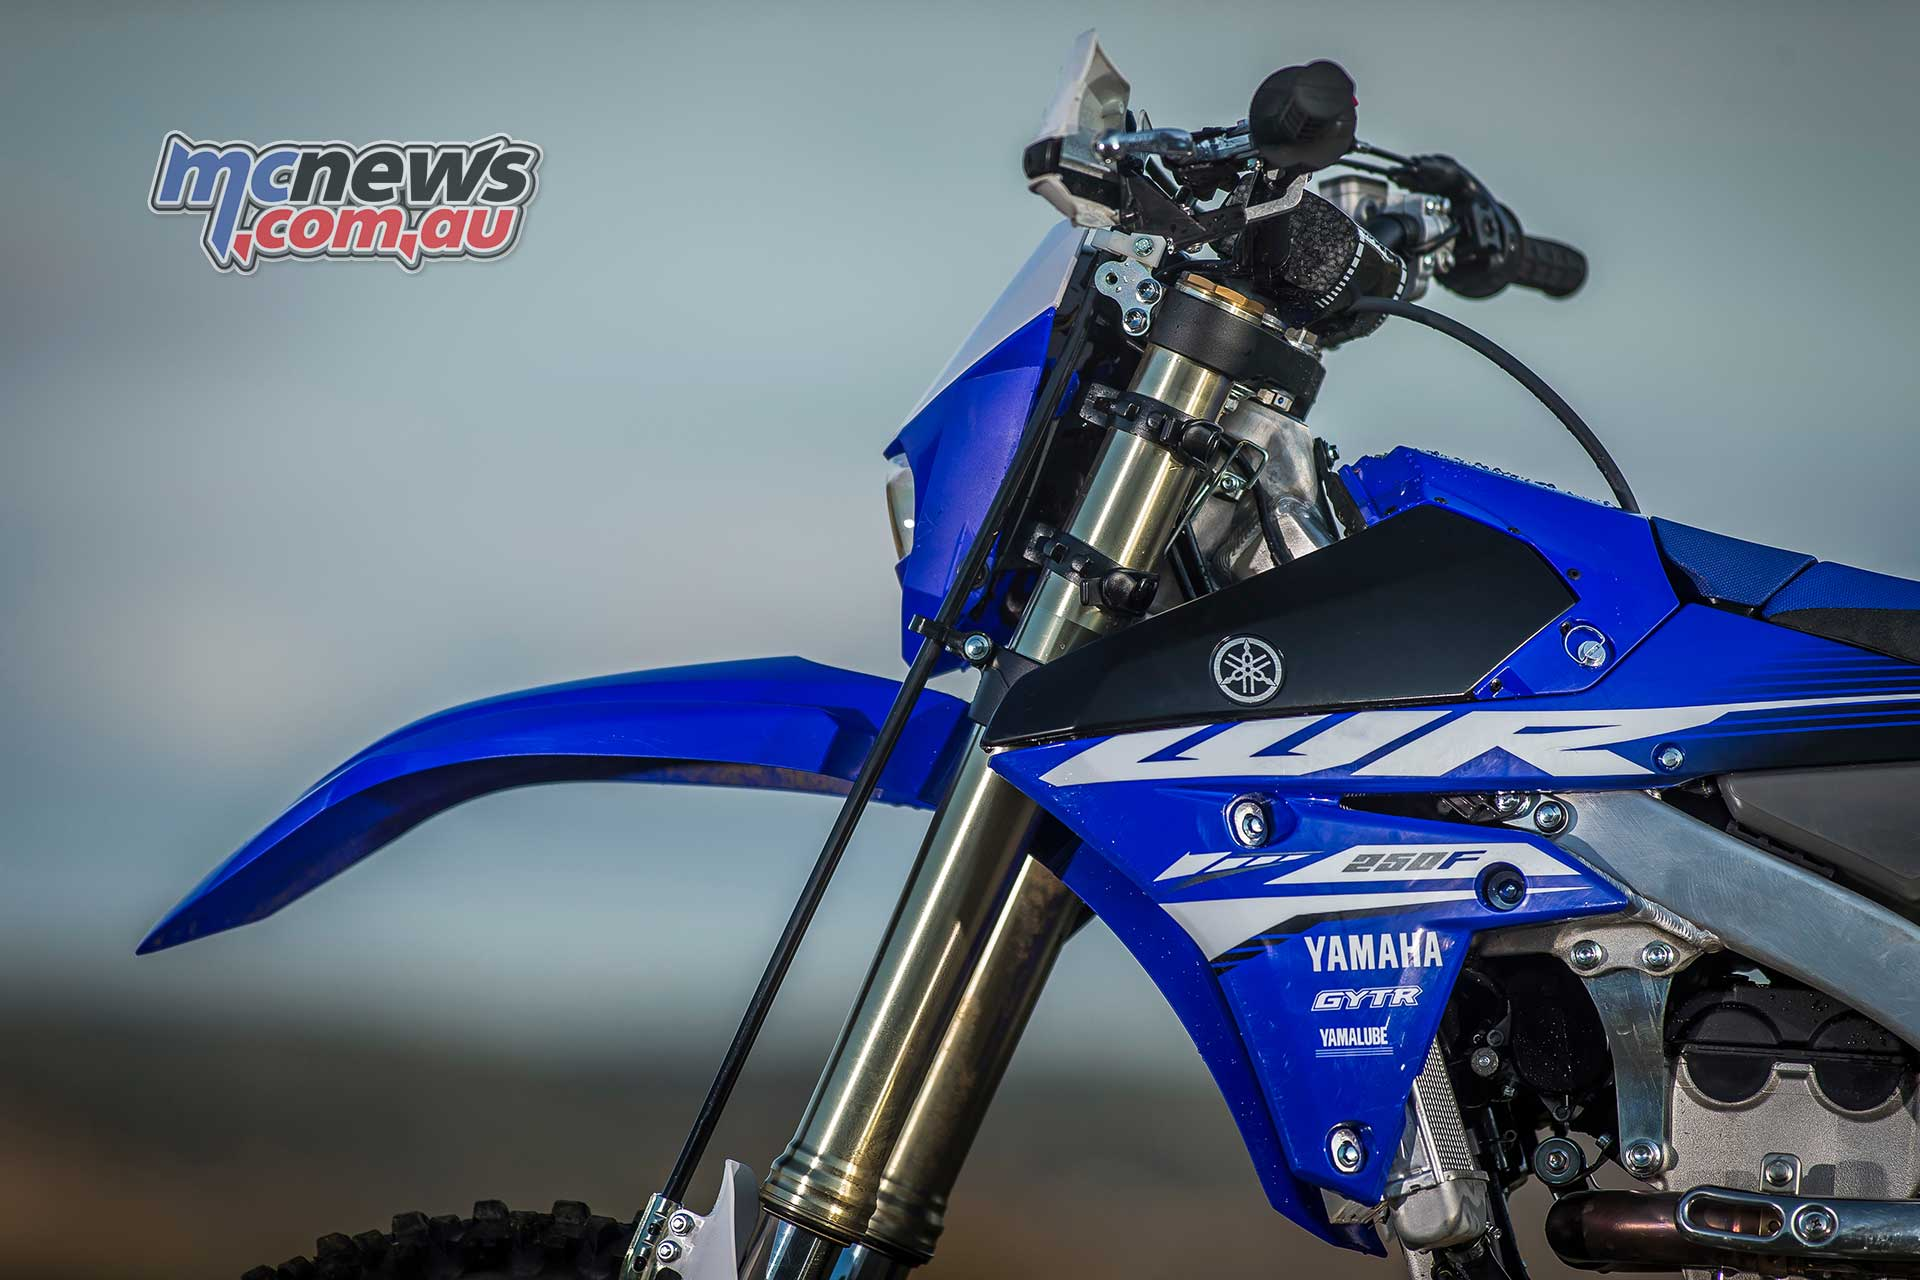 2018 Yamaha Wr250f Review Motorcycle Test Mcnews Com Au